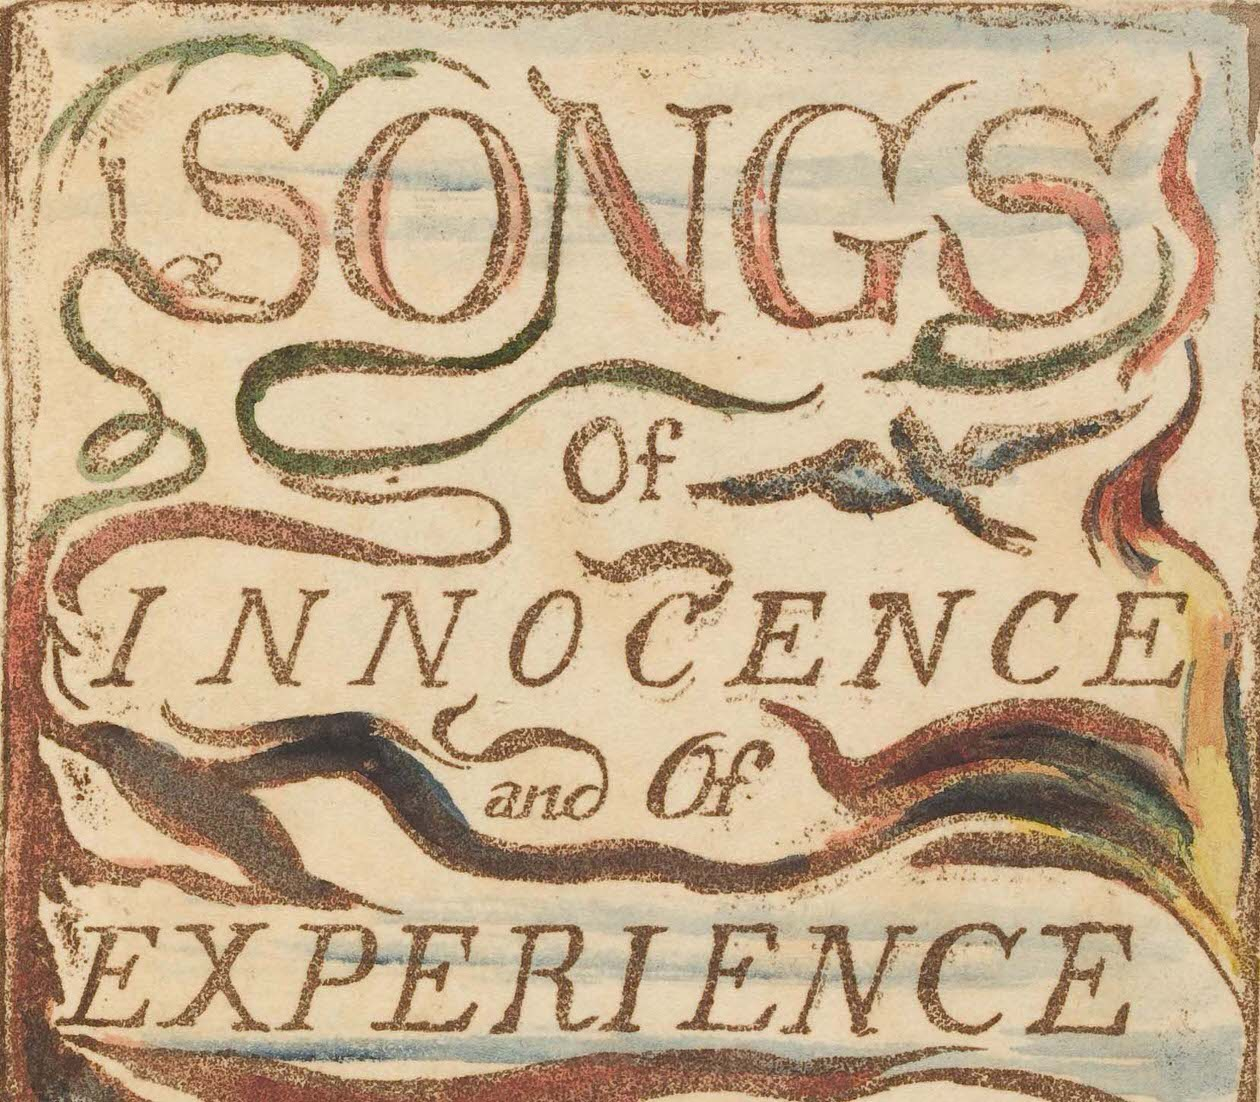 詩集Songs of innocence